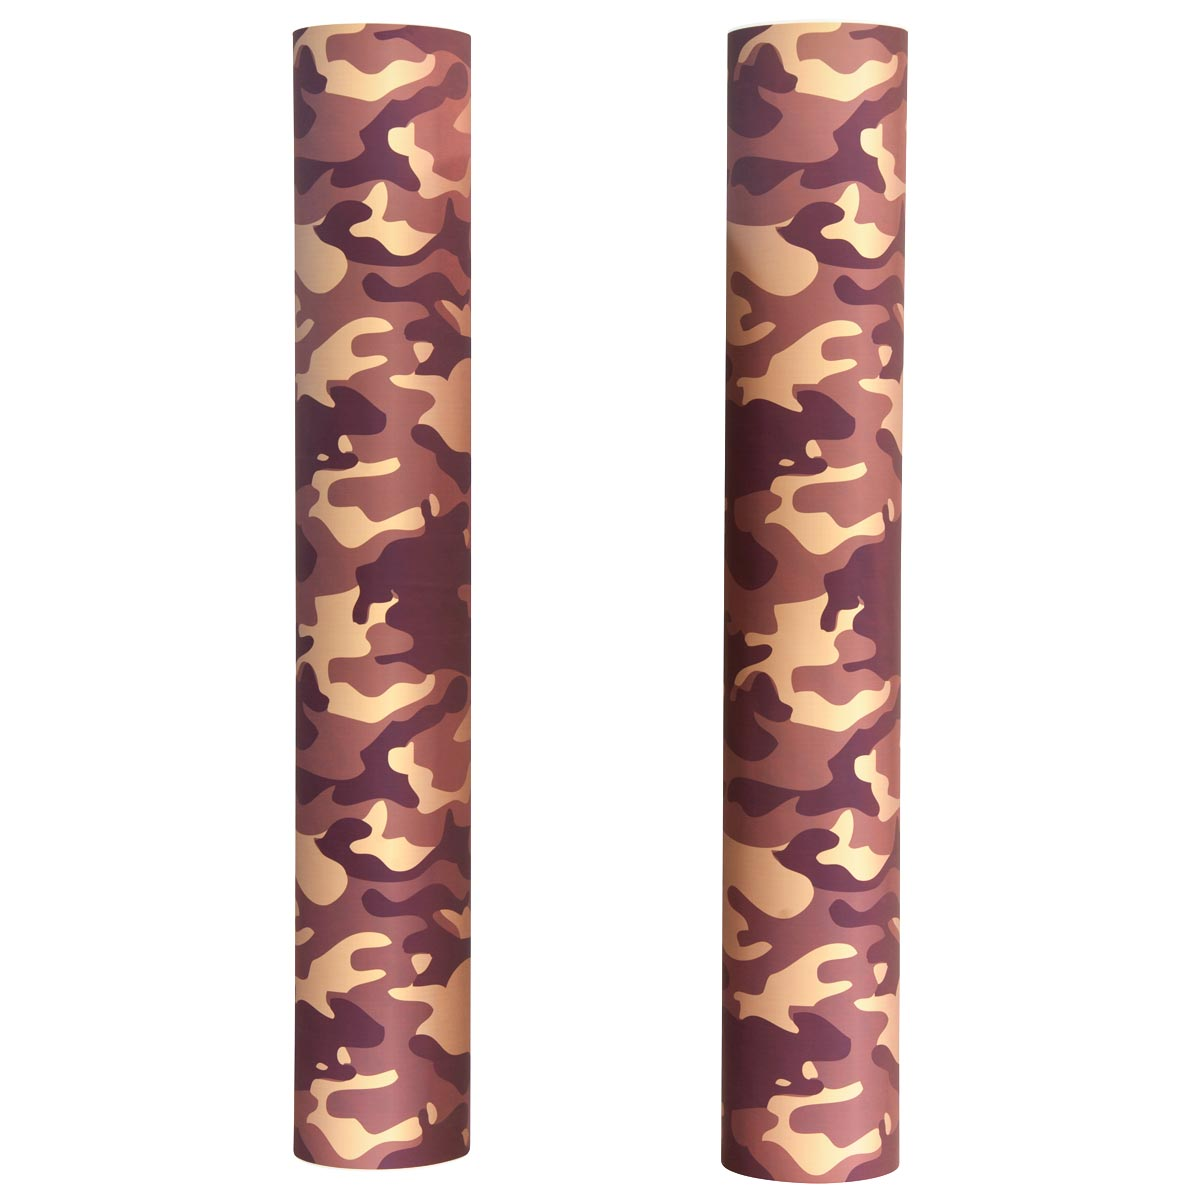 Short Camo Columns Kit (set of 2)